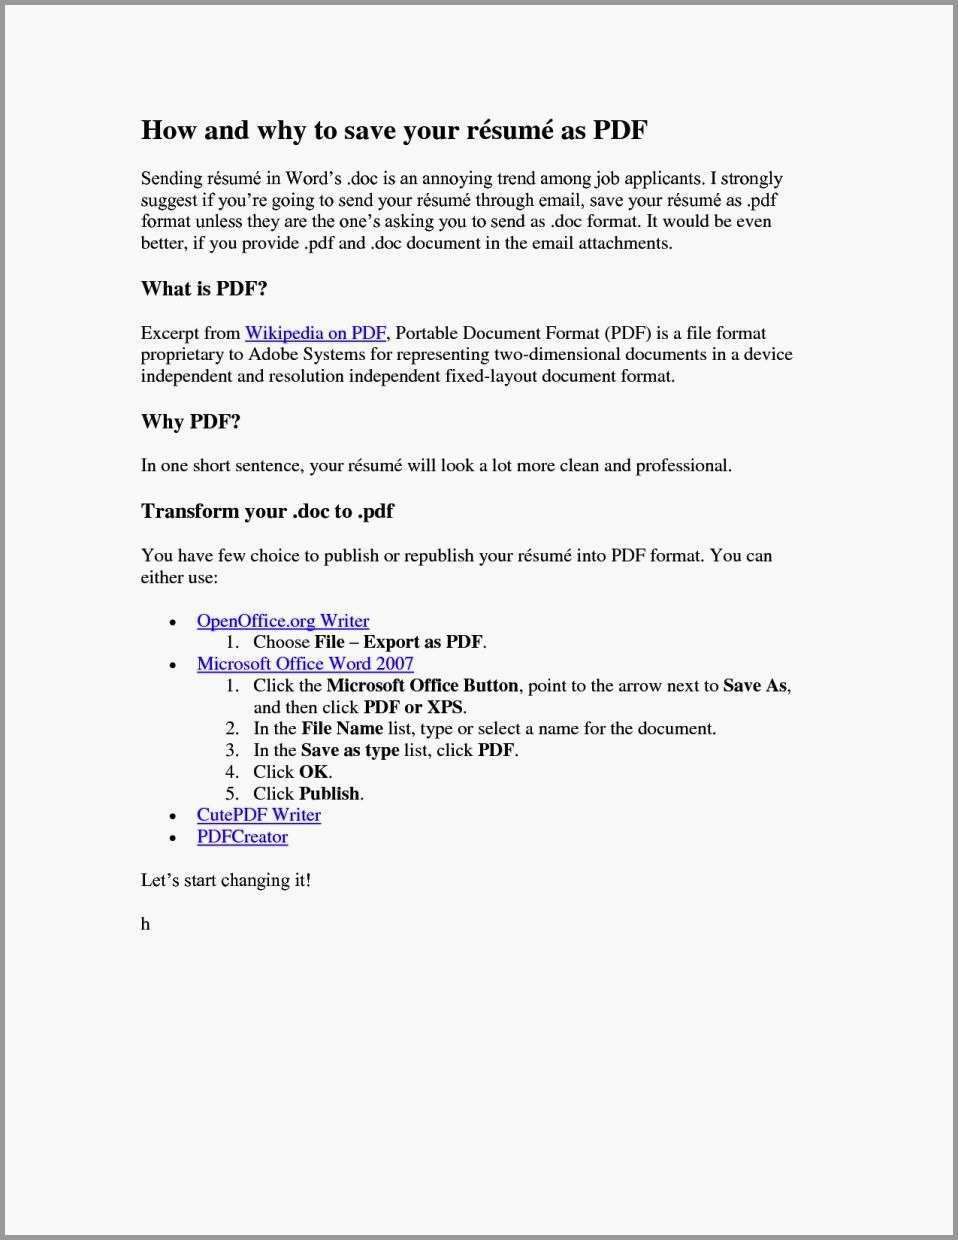 How To Type A Resume Sending Resume Toiter Elegant Email Format For Pany Of Send Myiters Subject how to type a resume|wikiresume.com